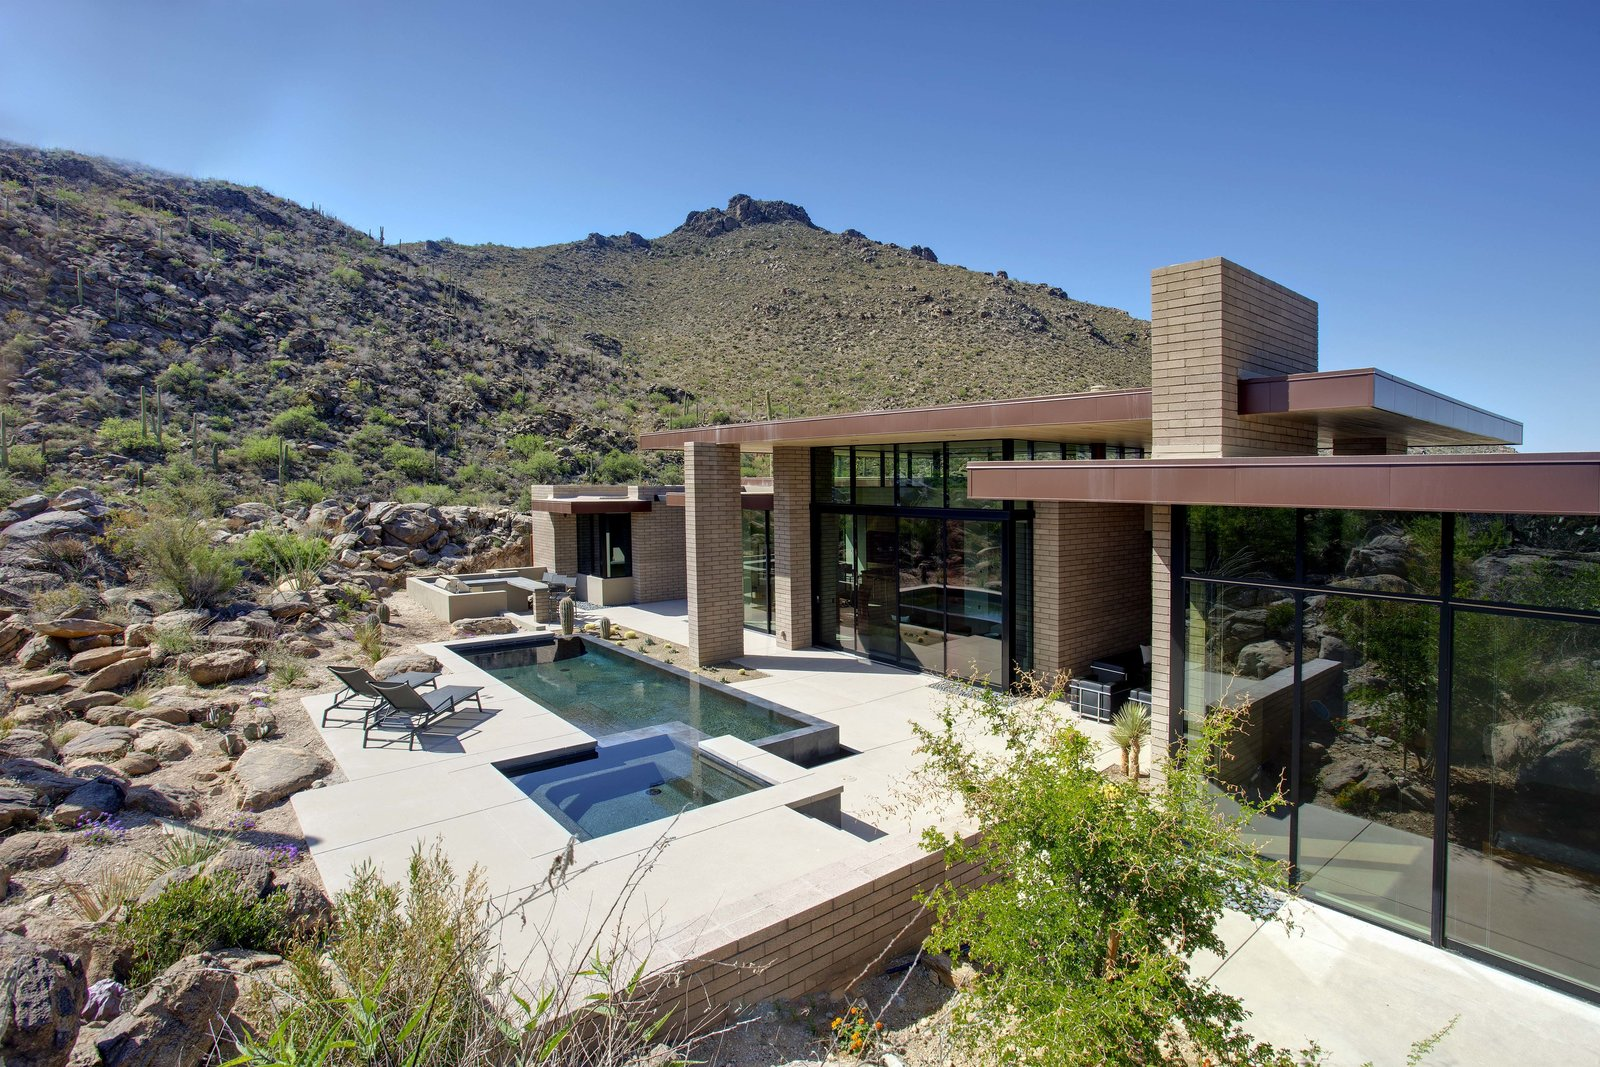 Outdoor, Back Yard, Desert, Small Pools, Tubs, Shower, Boulders, Concrete Patio, Porch, Deck, and Swimming Pools, Tubs, Shower  Desert Mountain Home by Kevin B Howard Architects